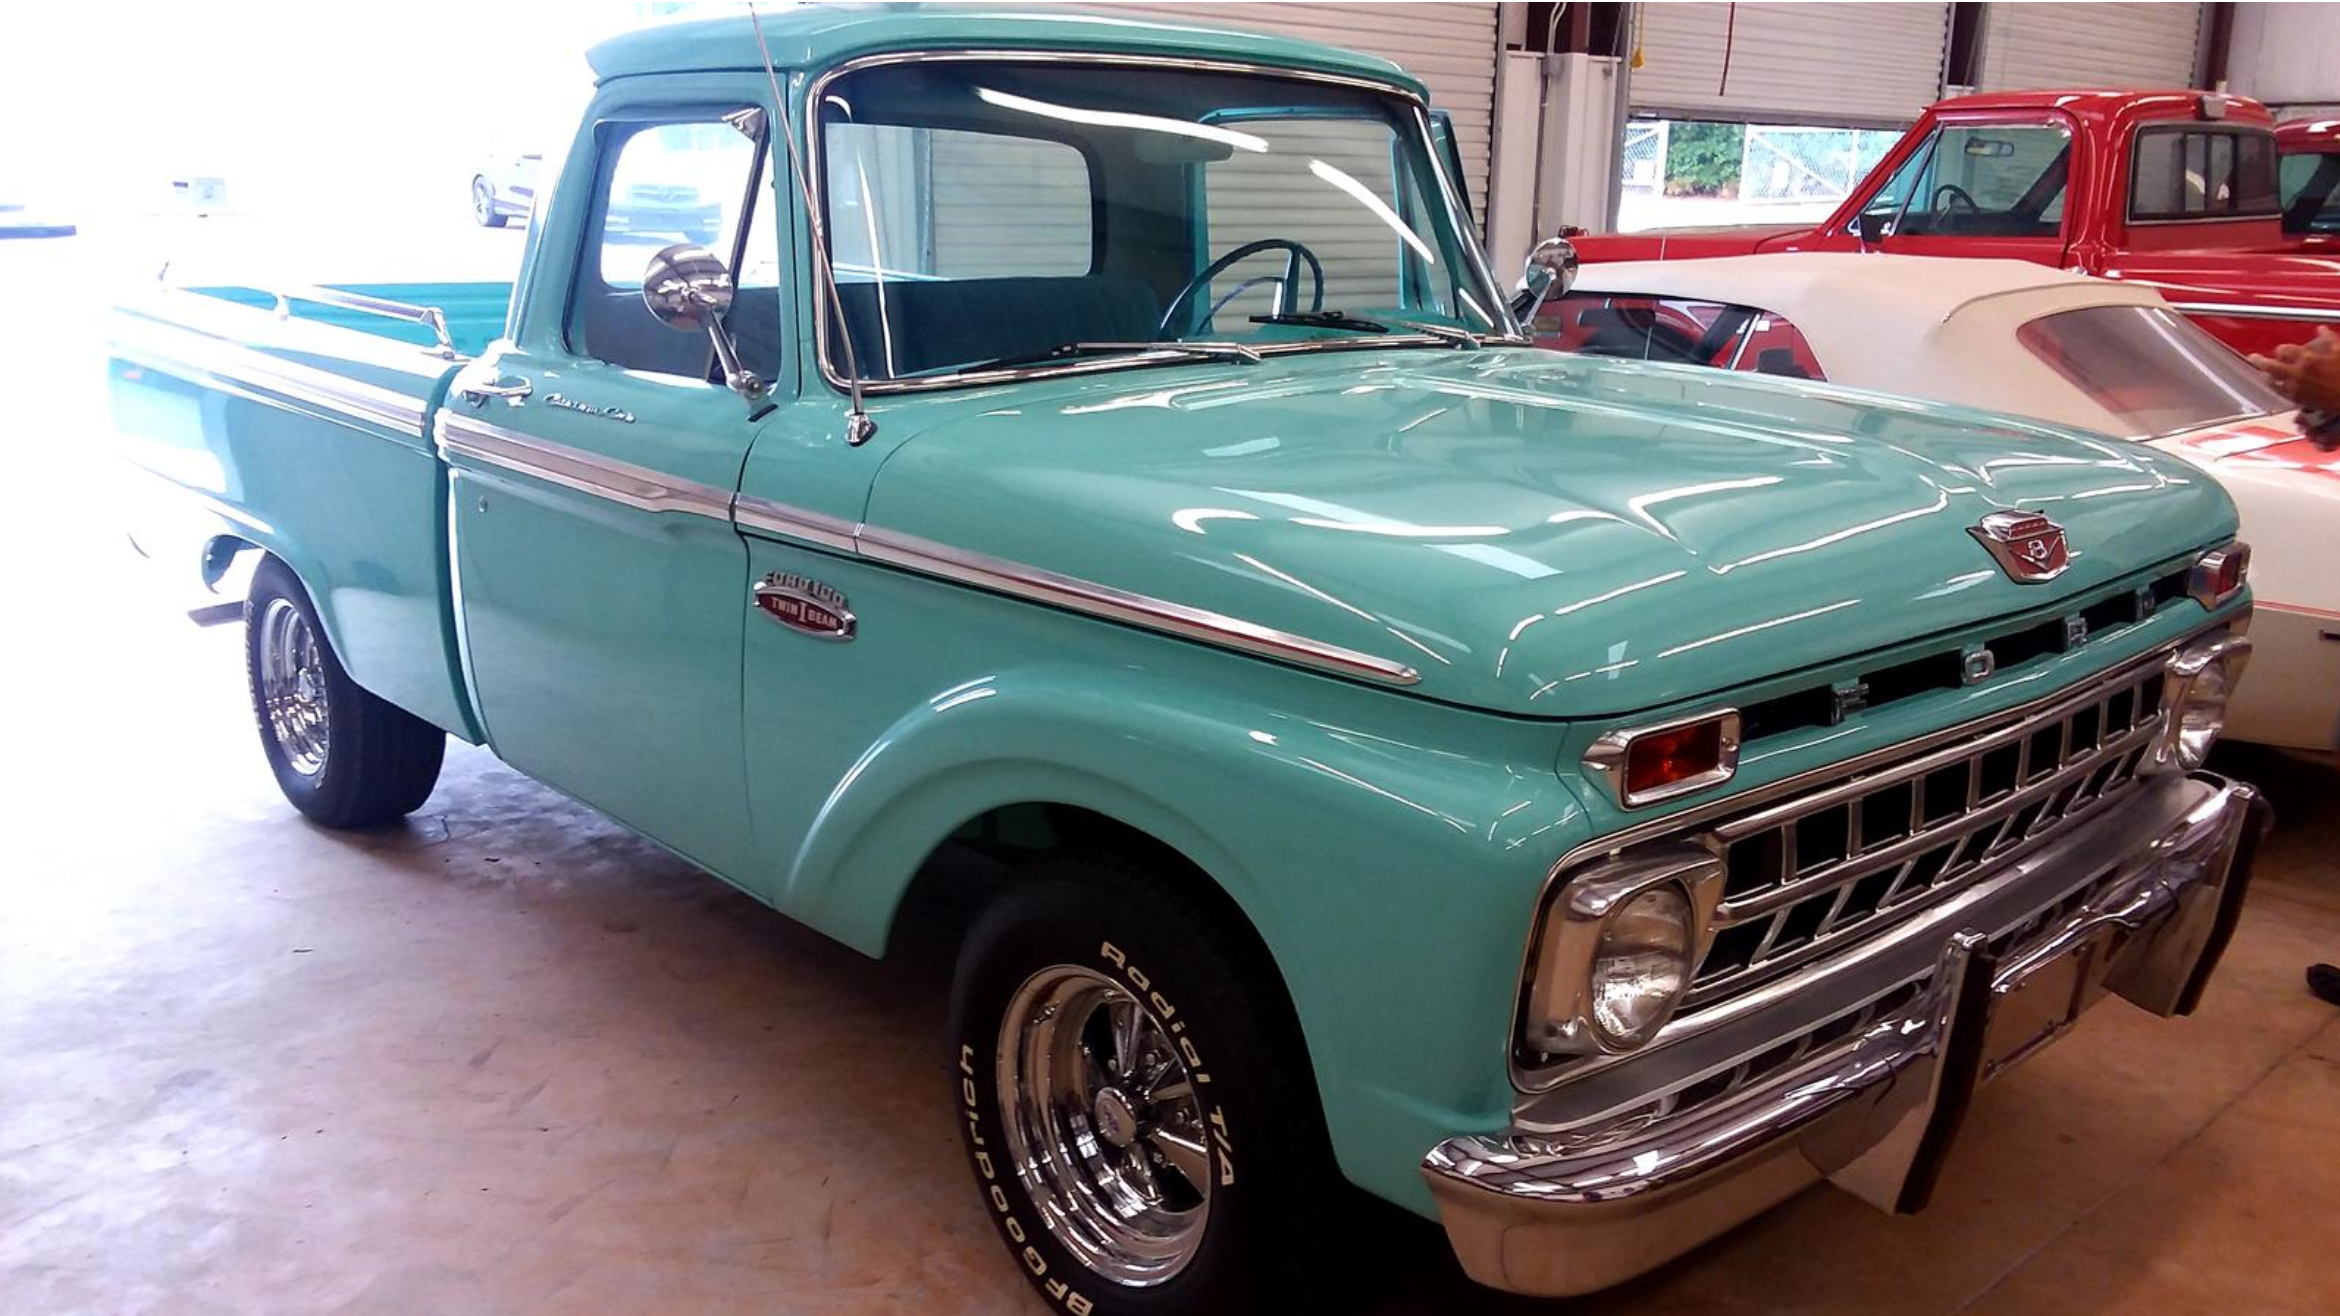 Haul It All With This Beautiful 1965 Ford F100 Swb Ready For Bids